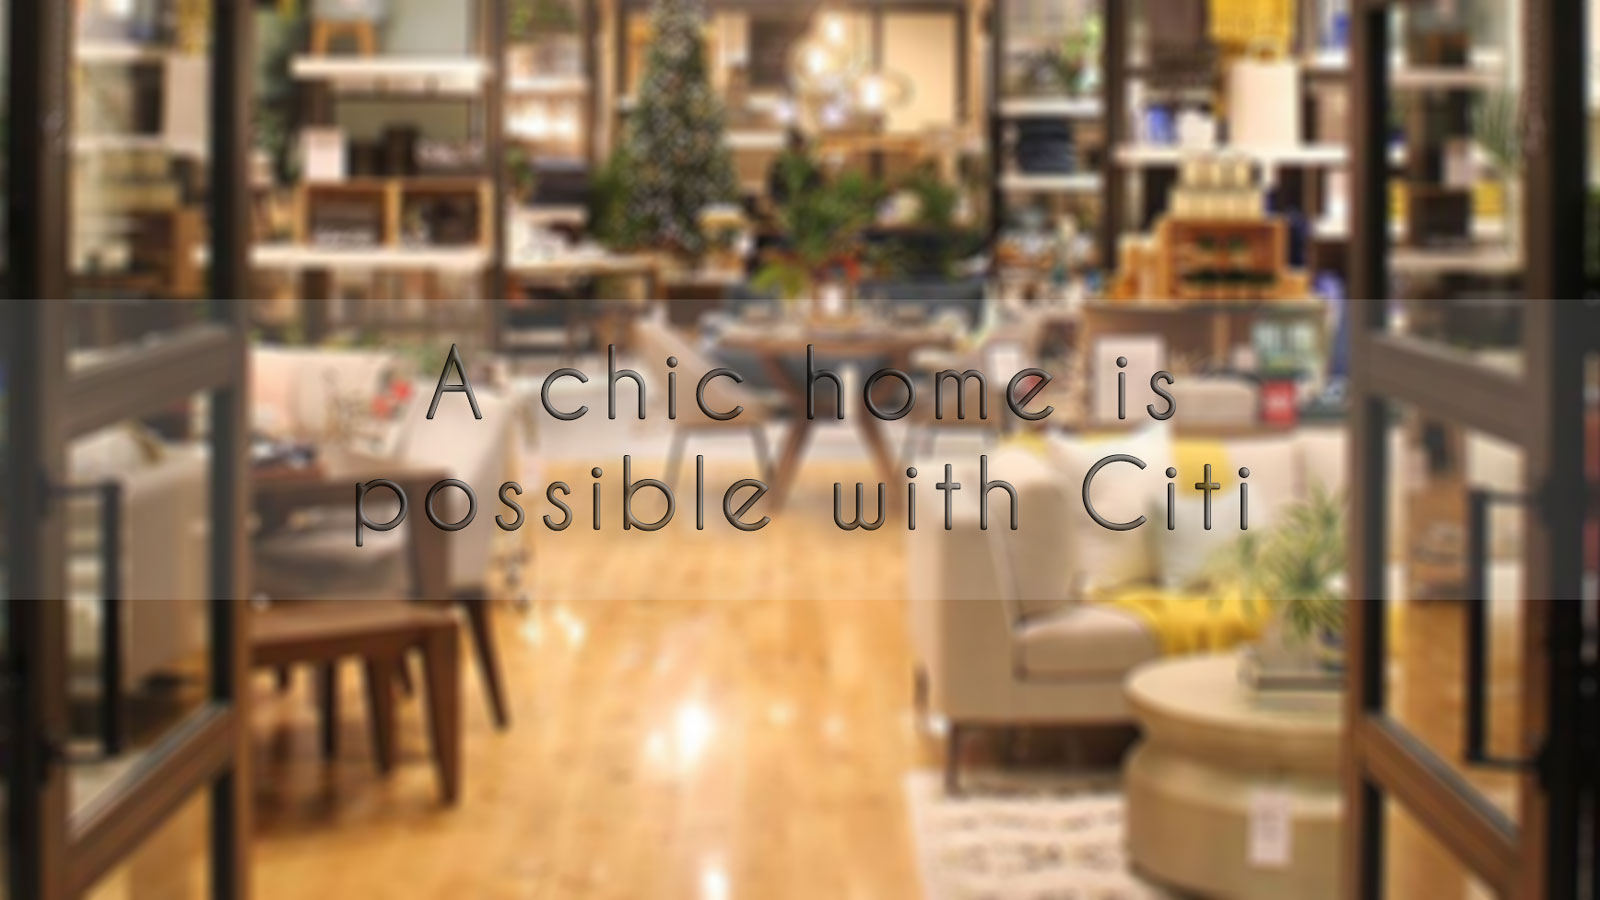 Chic Furniture from Pottery Barn and West Elm through Citi